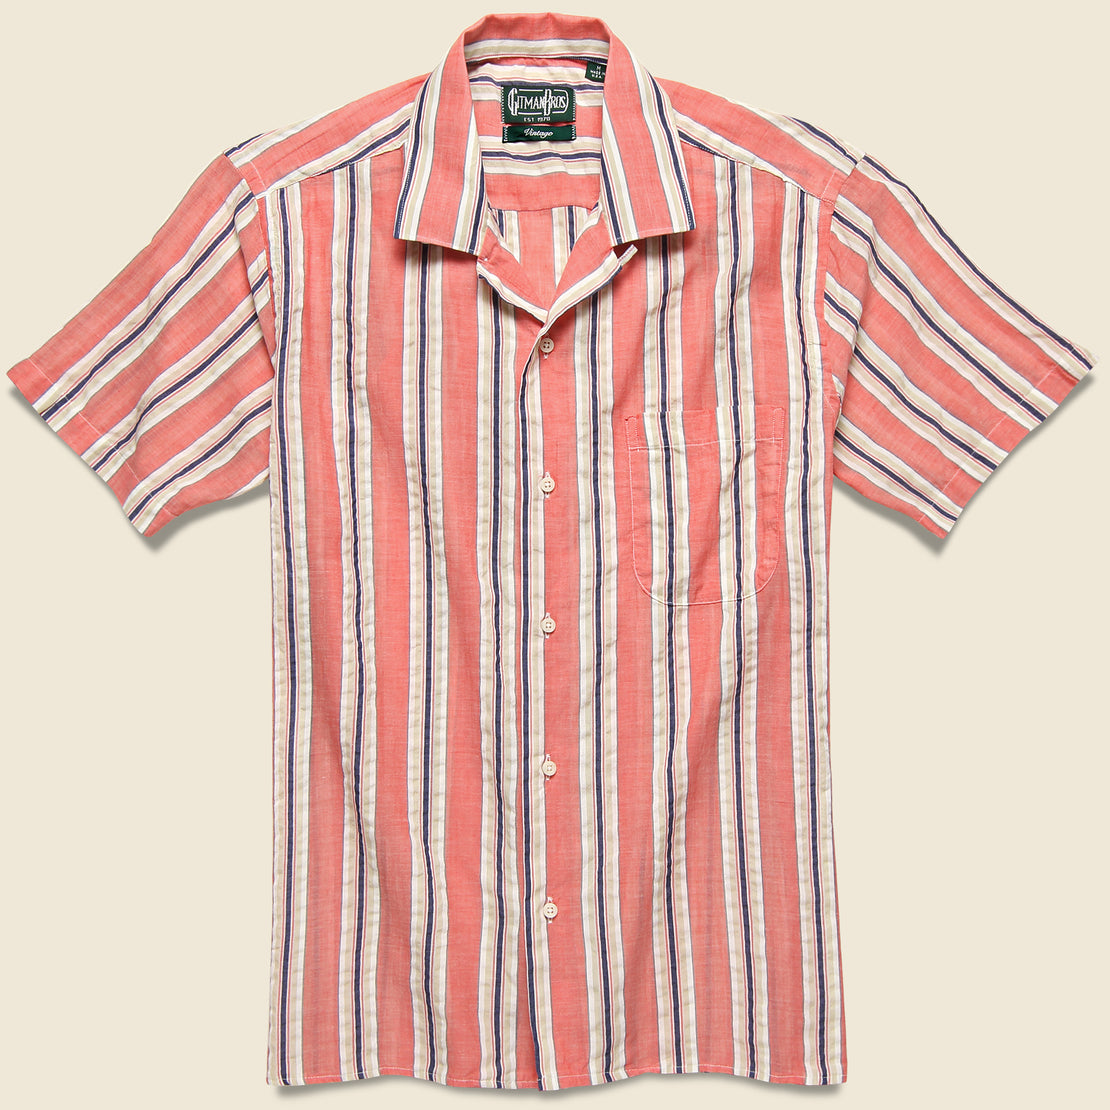 Gitman Vintage Awning Stripe Camp Shirt - Pink